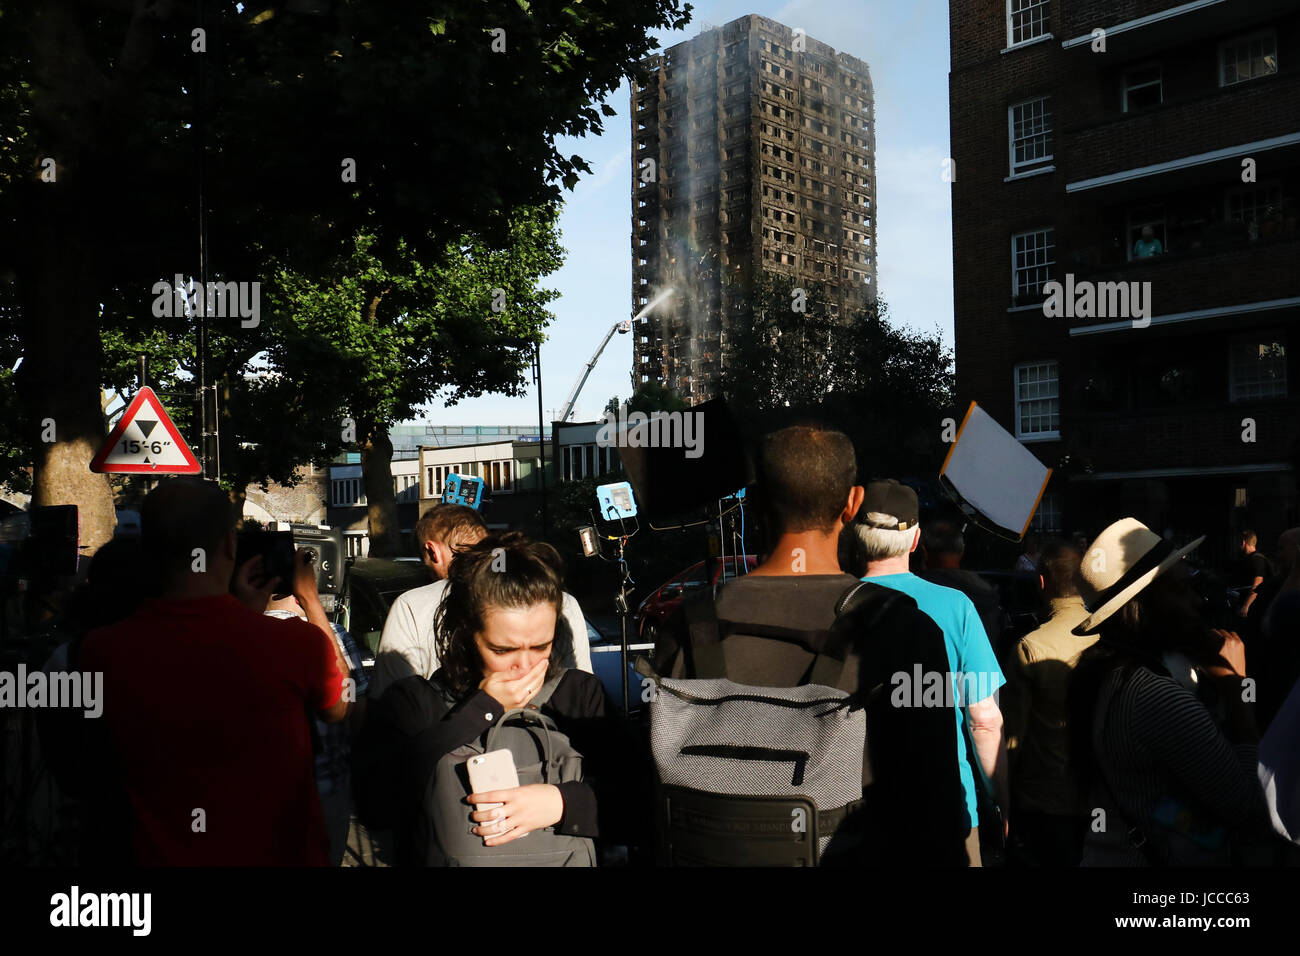 Grenfell Tower fire in London. London, UK. 14th June, 2017 Stock Photo